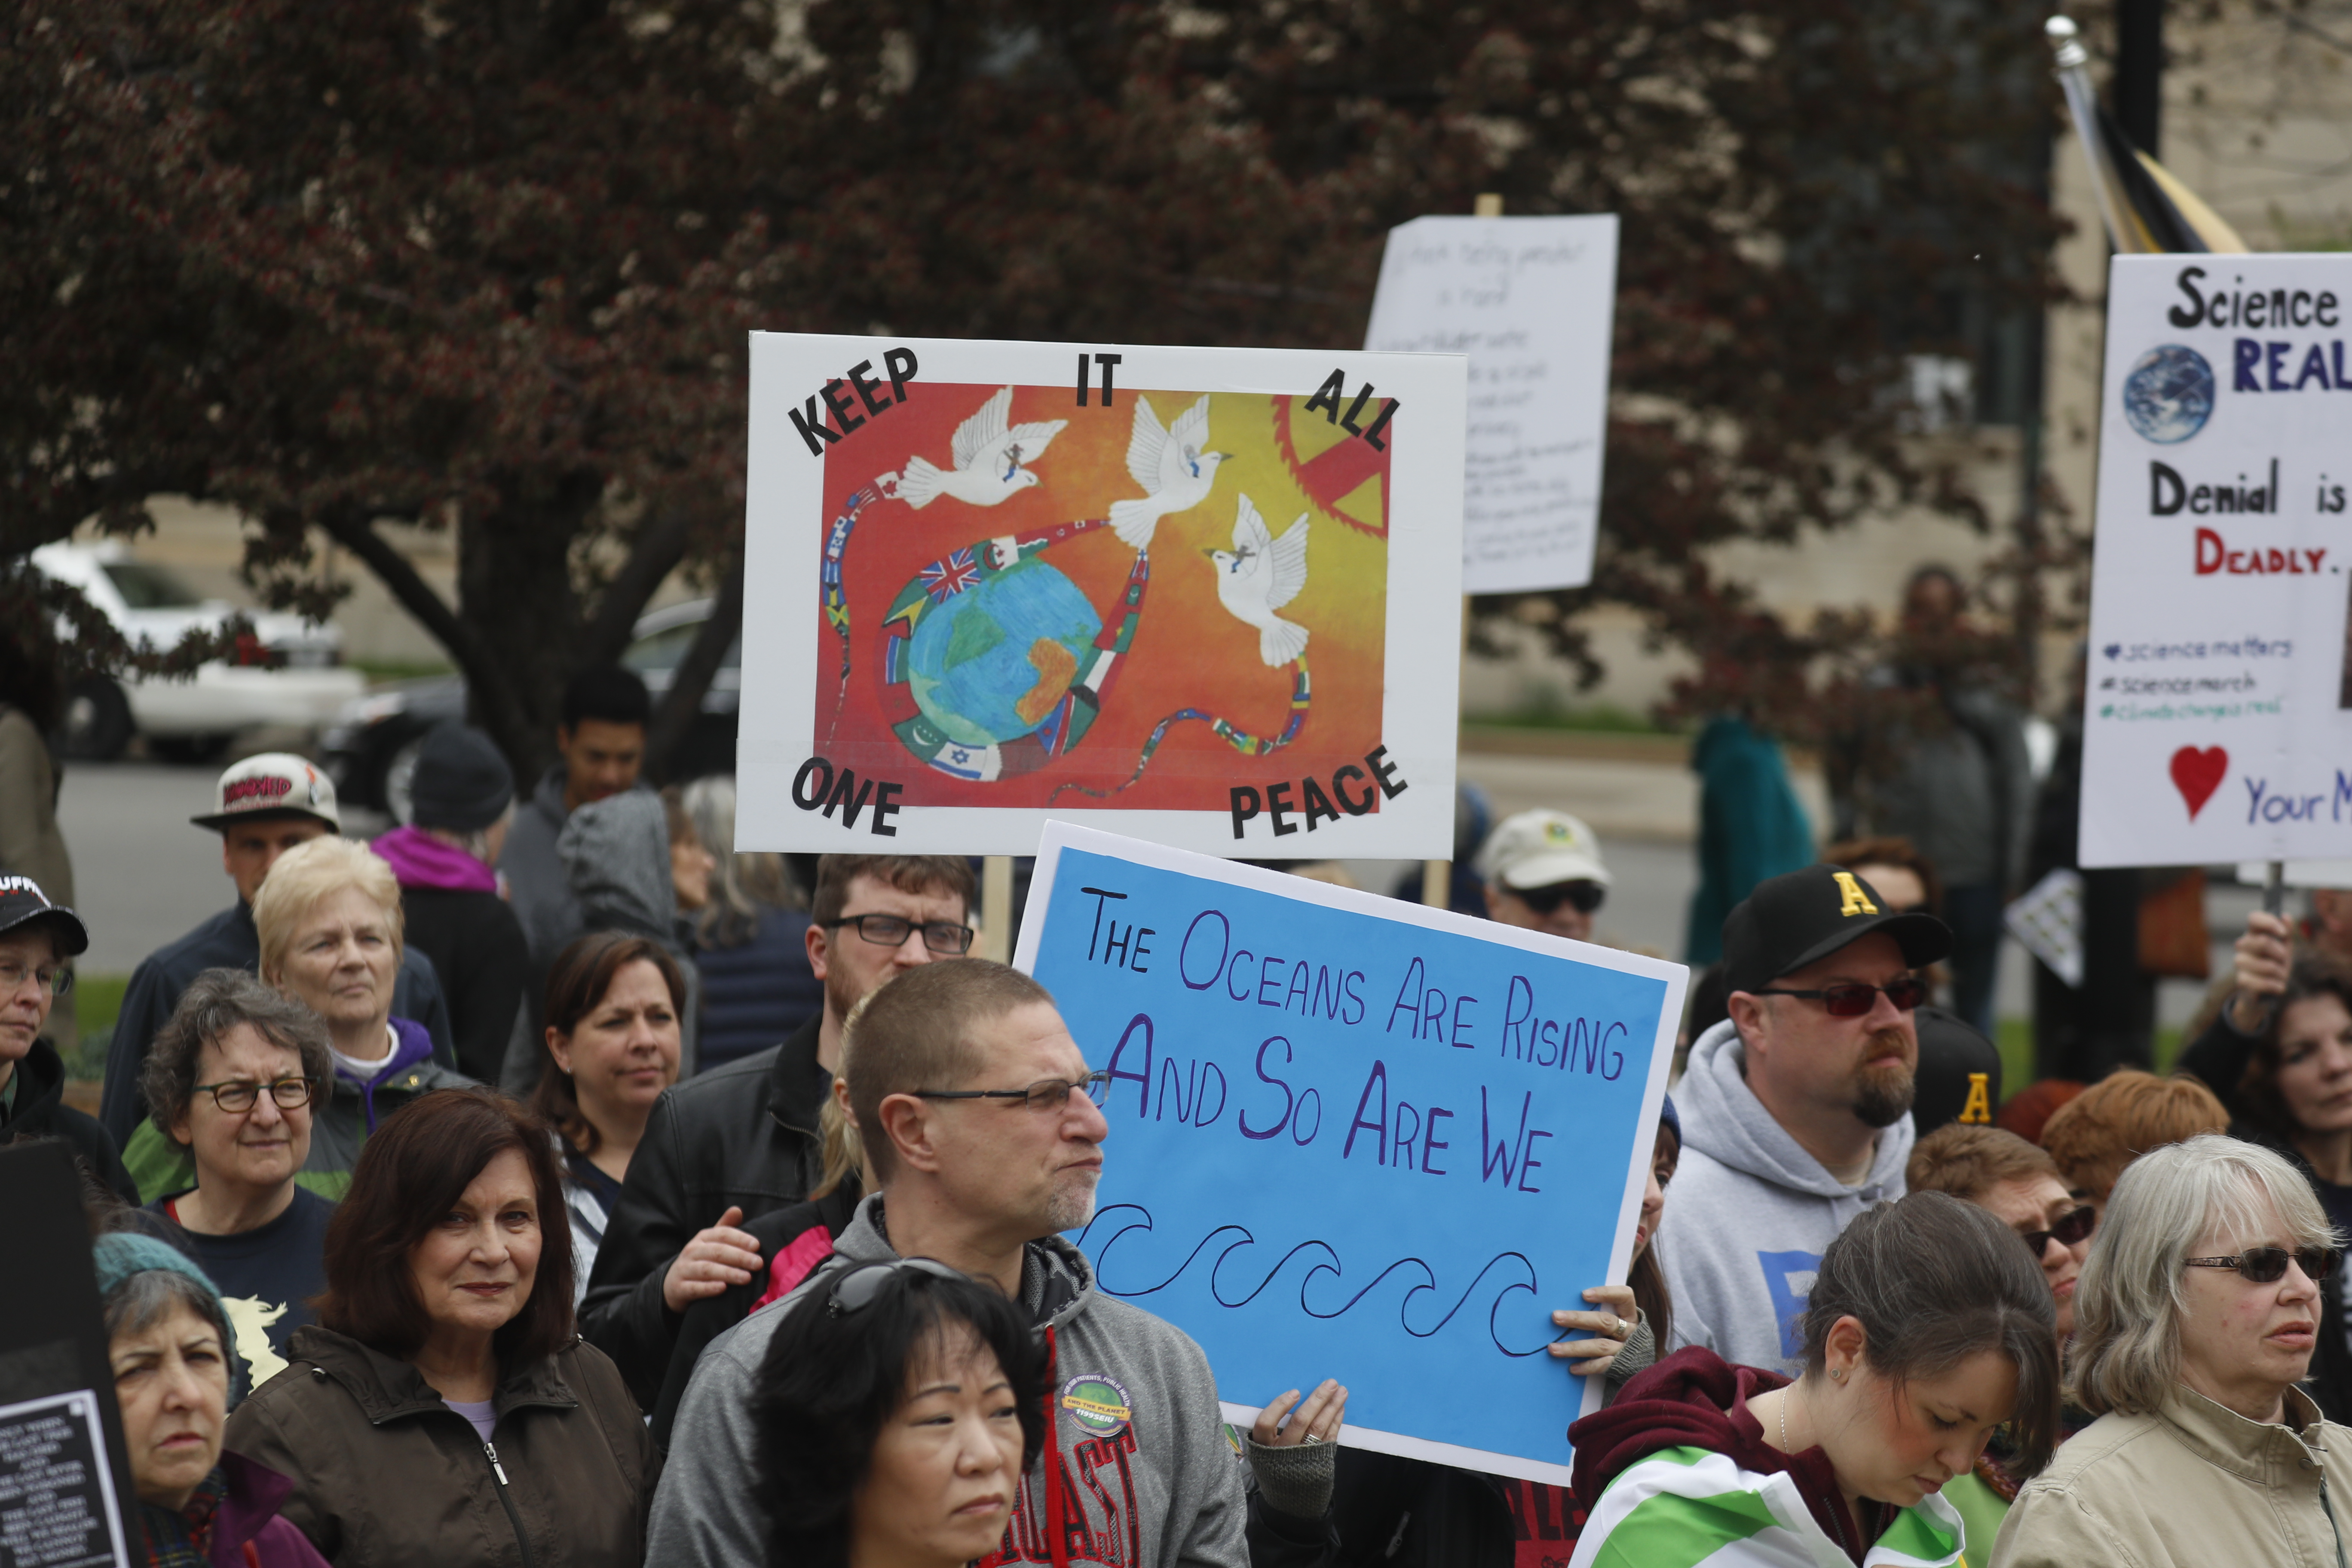 Hundreds gathered in Niagara Square to rally in support of science on  April 29. (John Hickey/Buffalo News)